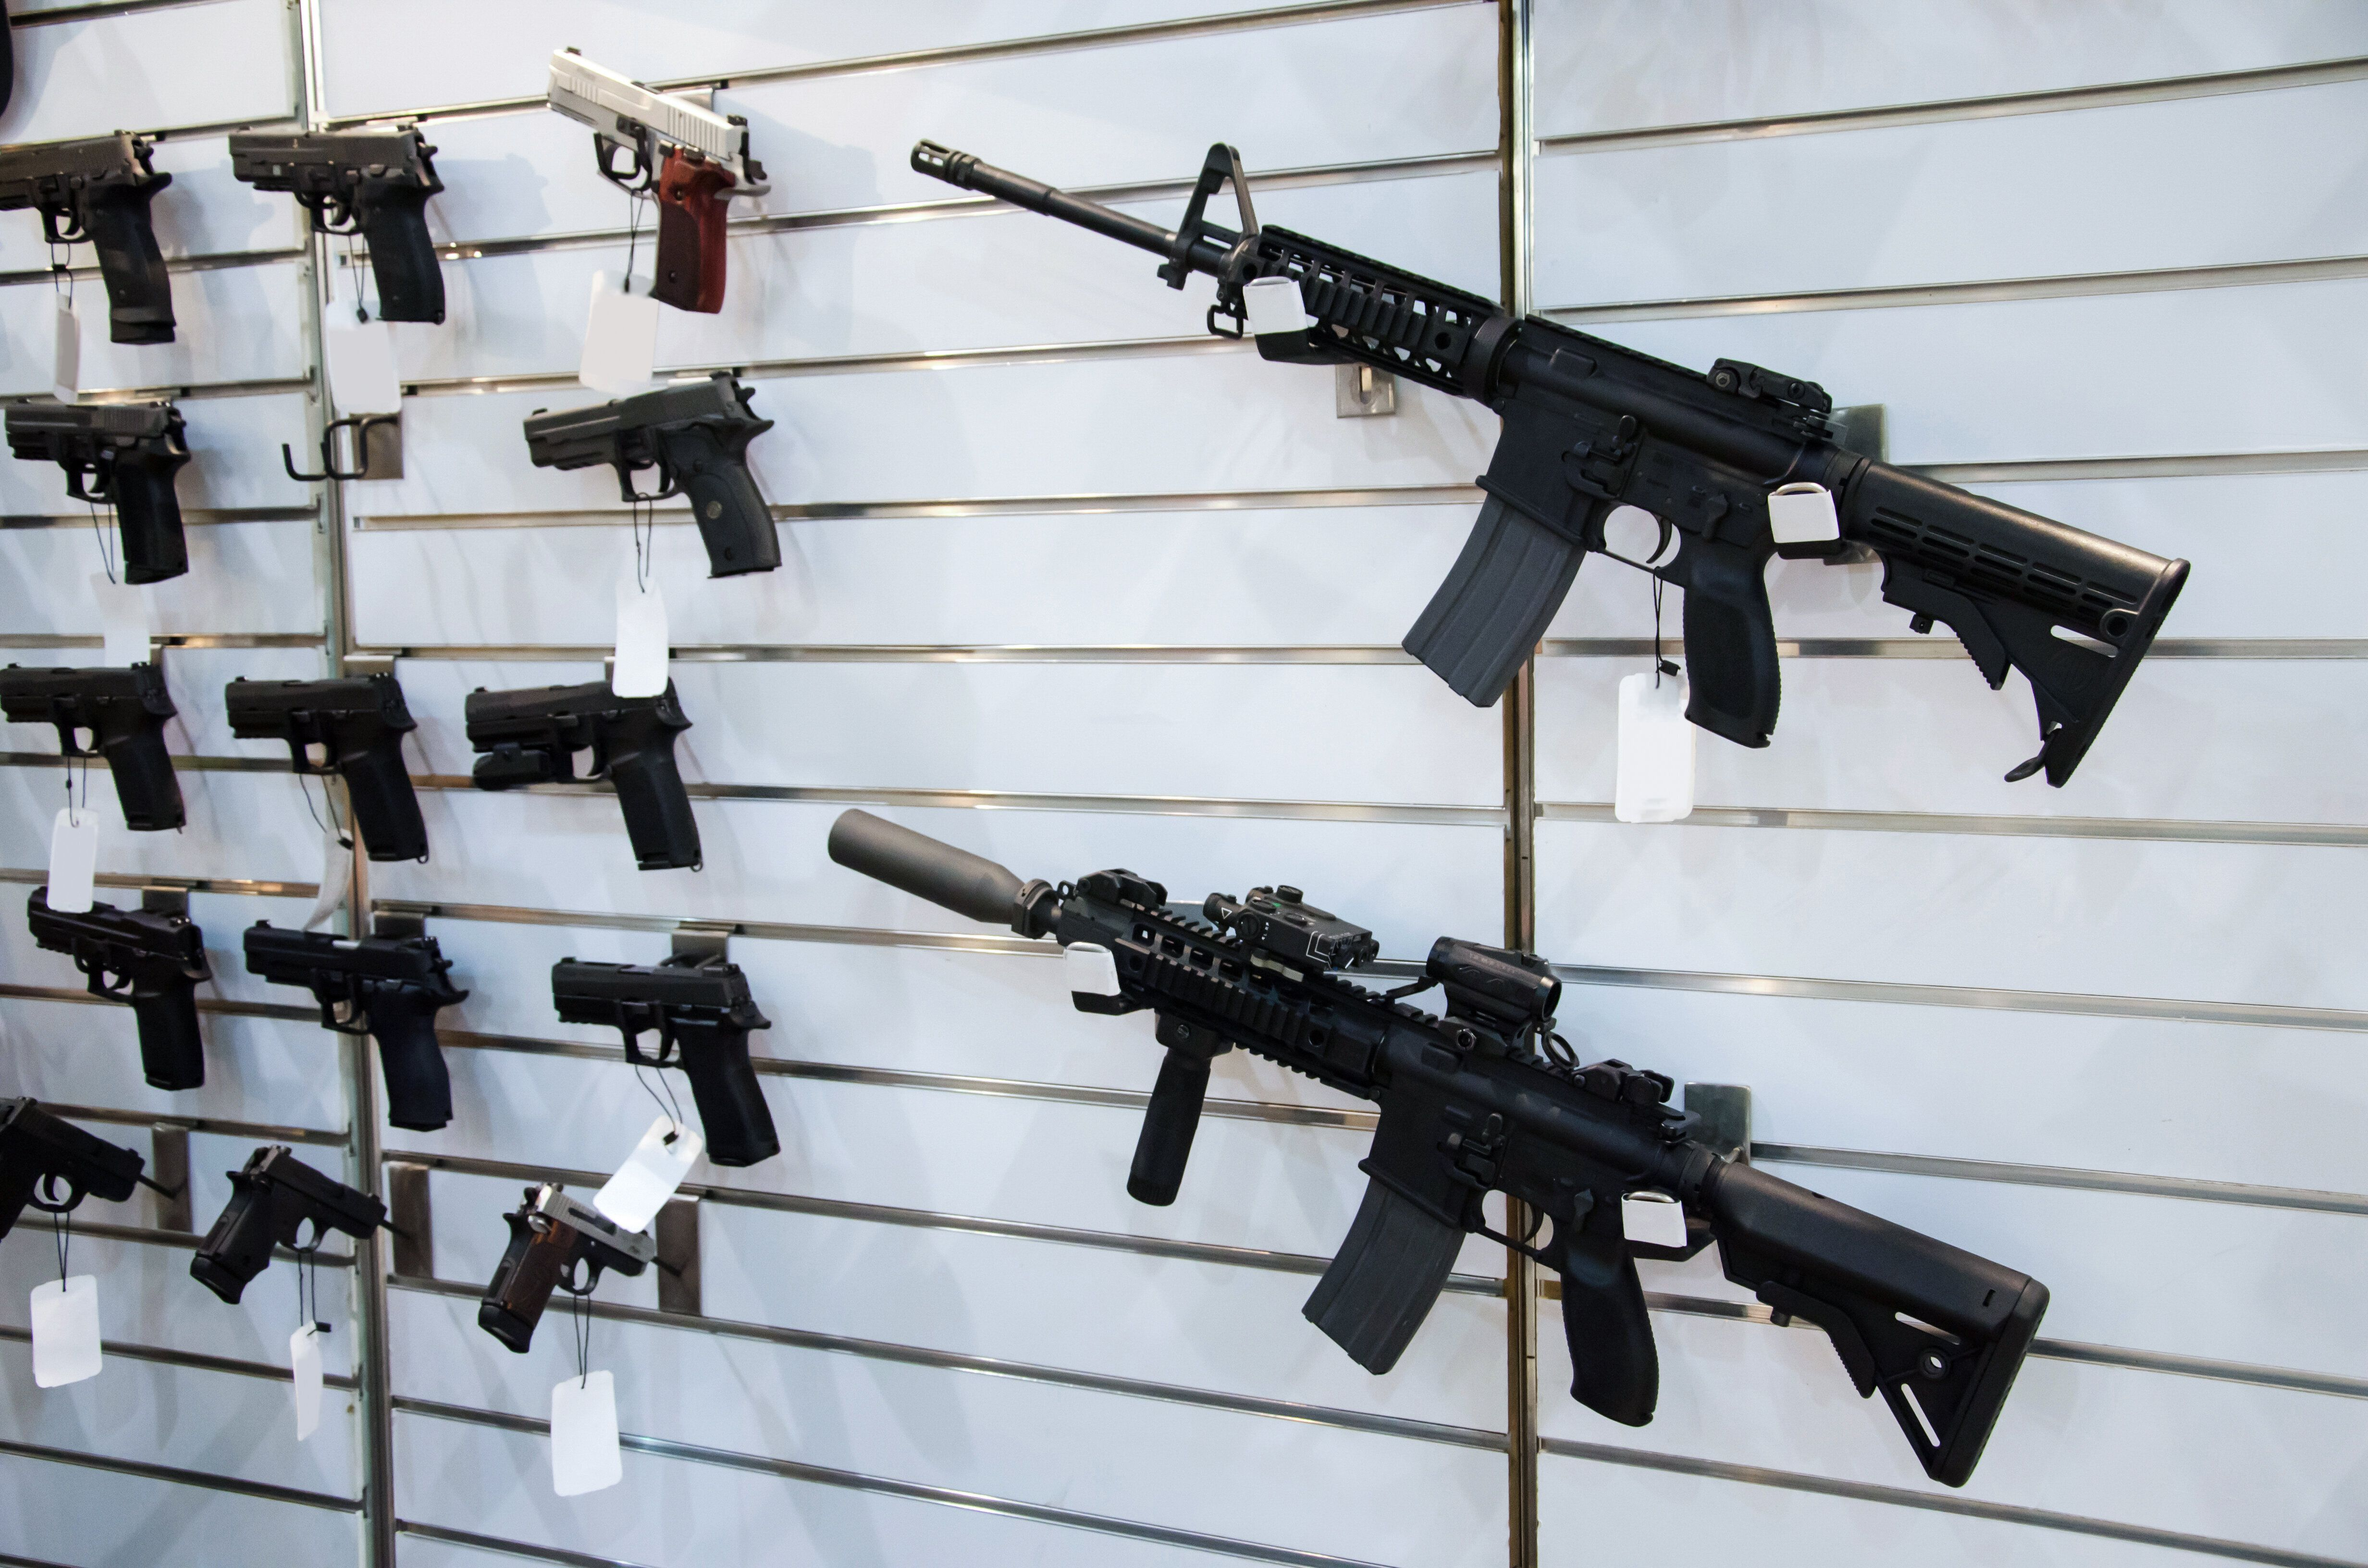 Texas Gun Store Comes Under Fire For Advertising 'Back To School' Firearms Sale